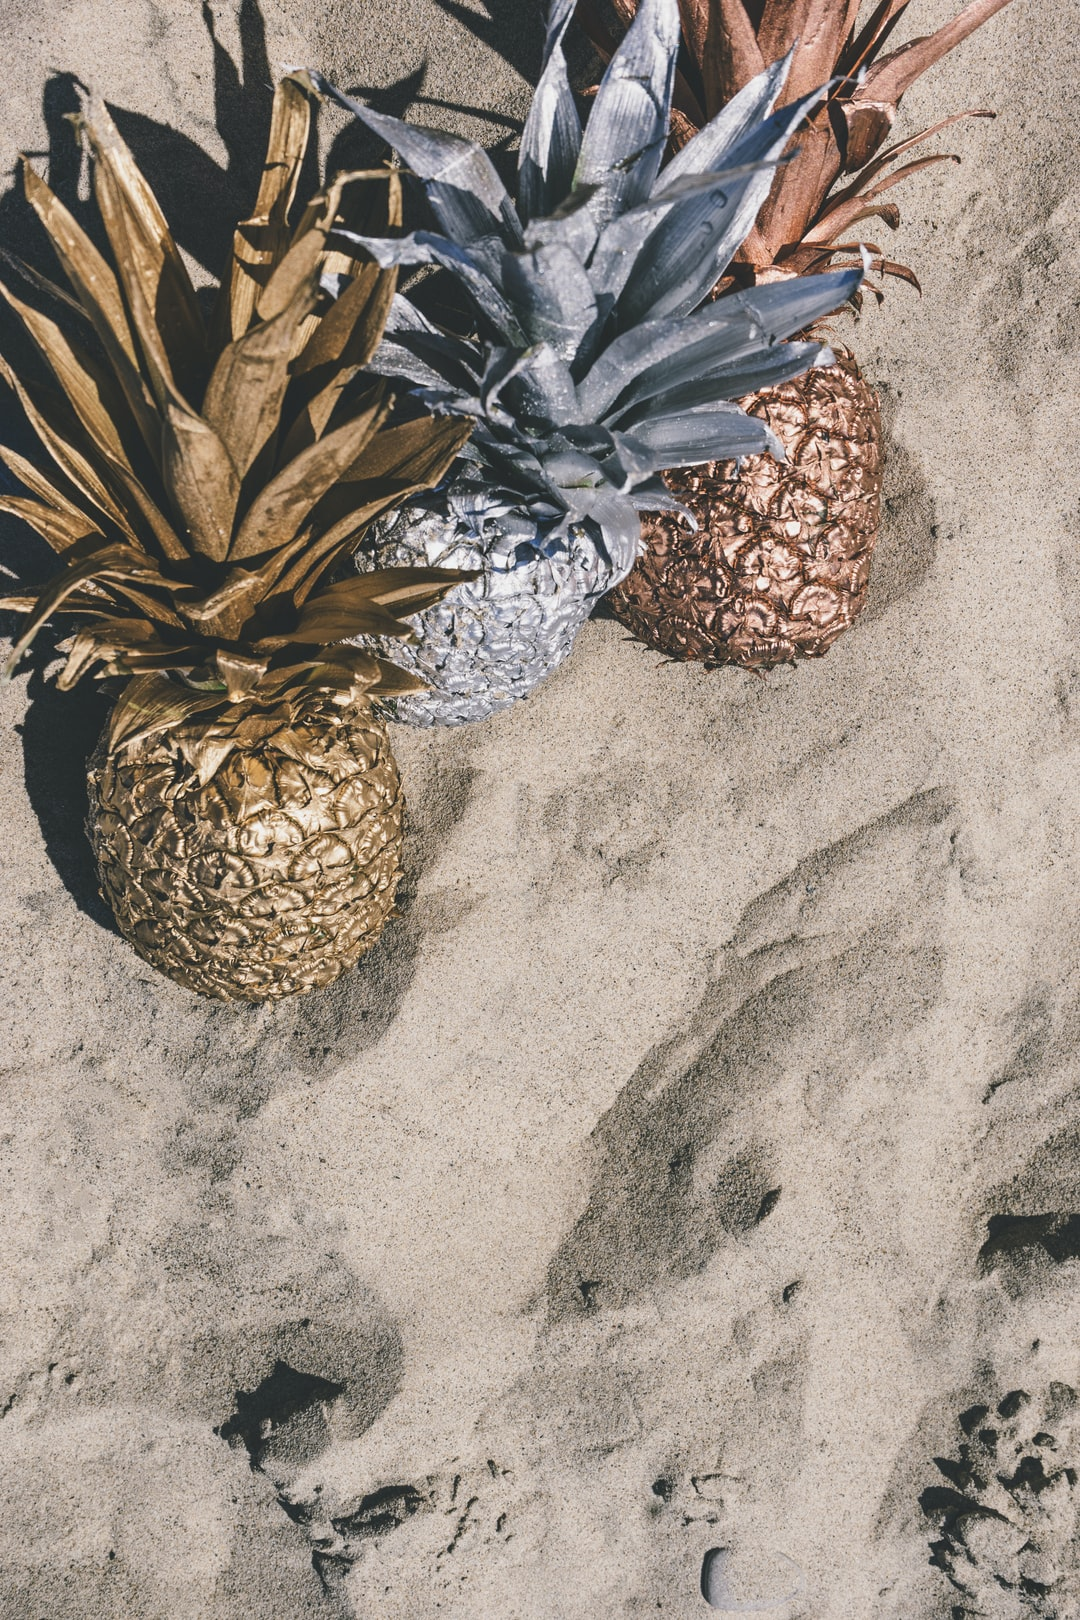 Pineapples painted gold, silver, bronze in the Sand